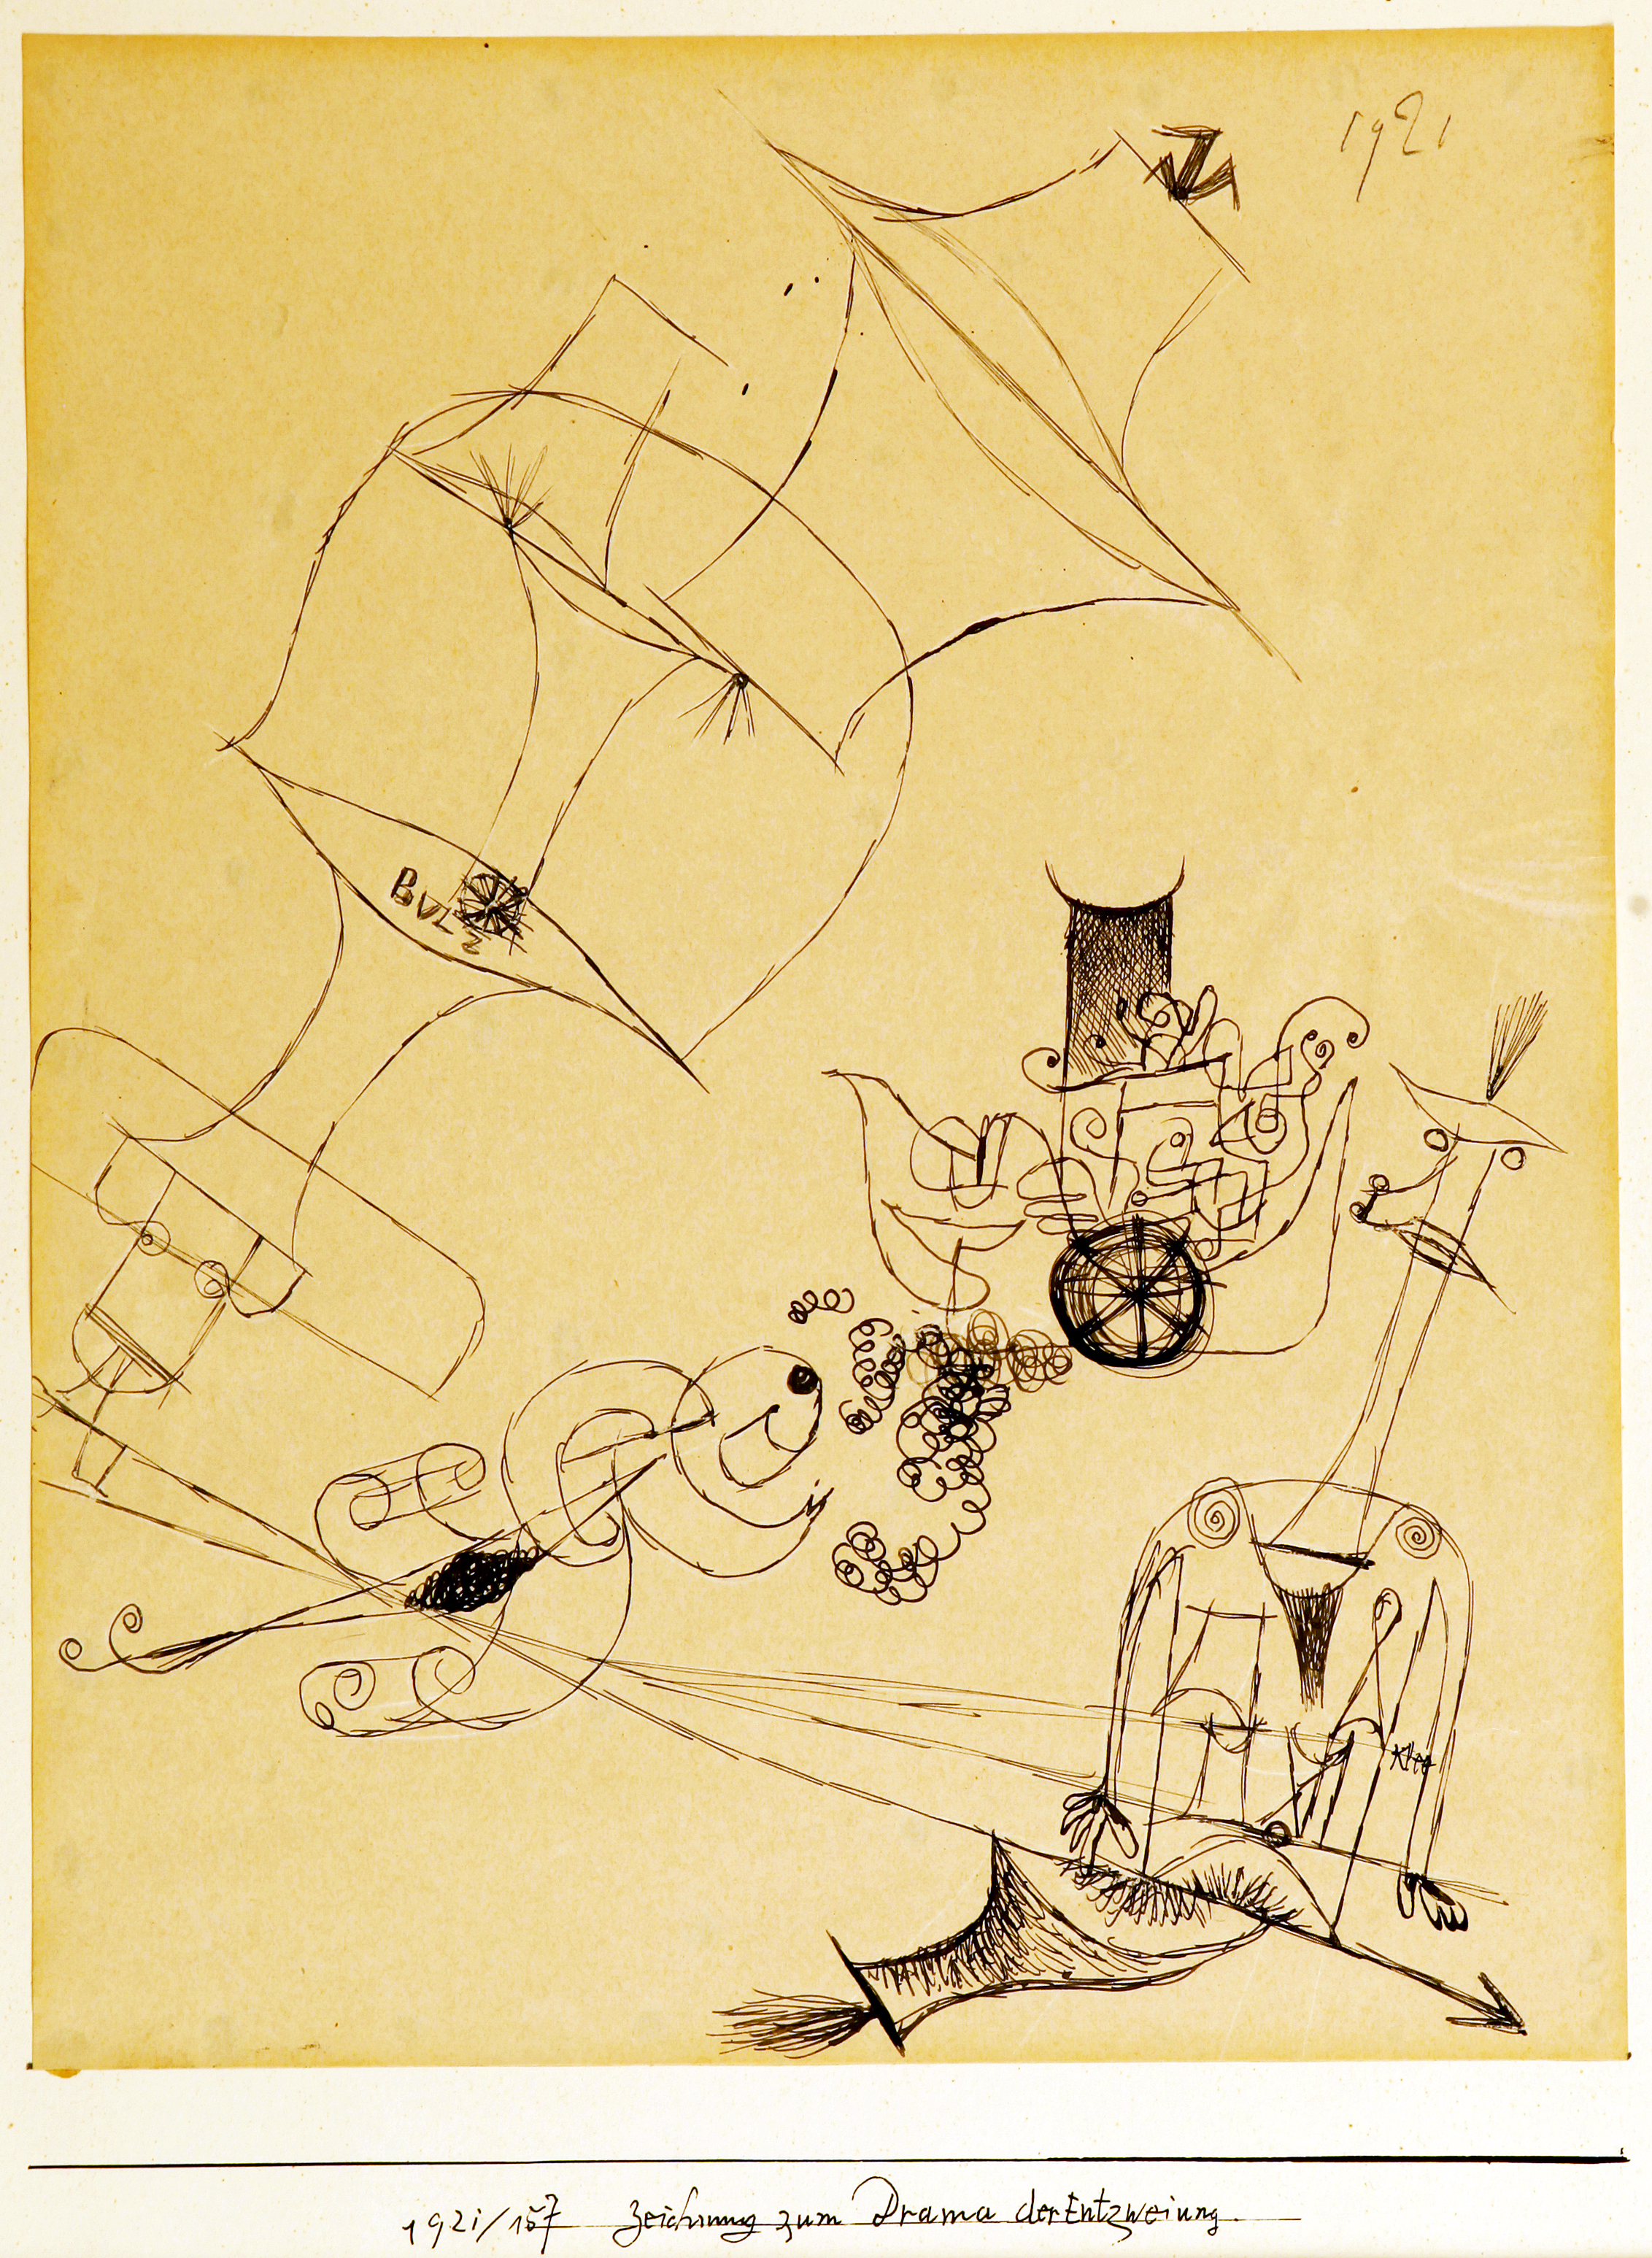 Image 3 Paul Klee Drawing for a Drama of Disunion, ink on paper, 1921